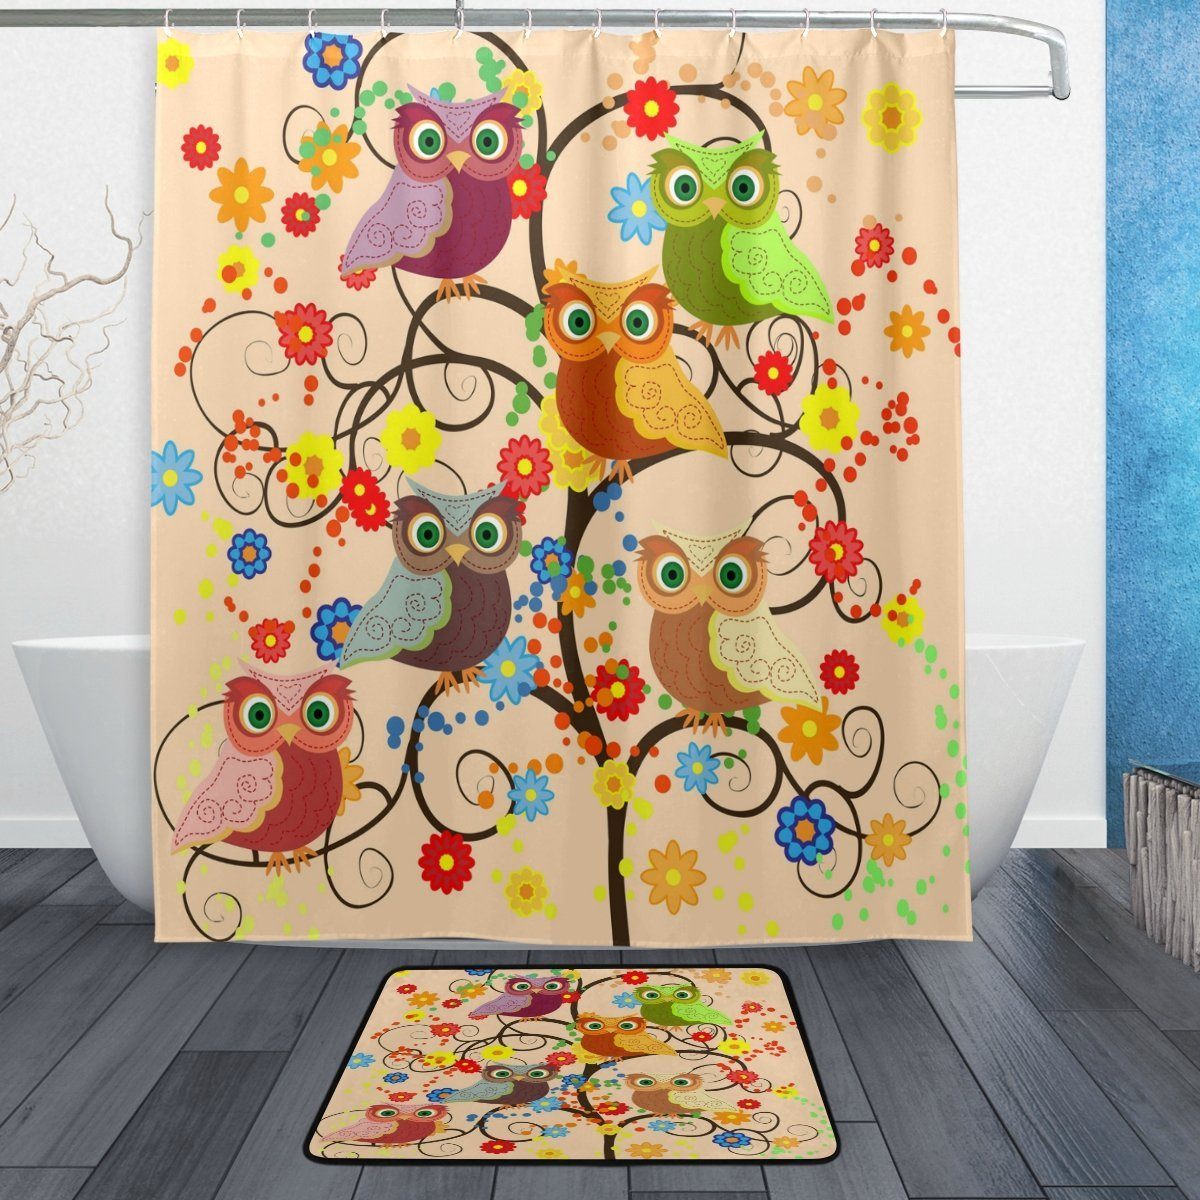 Cute Animal Owl Shower Curtain And Mat Set Cartoon Owl